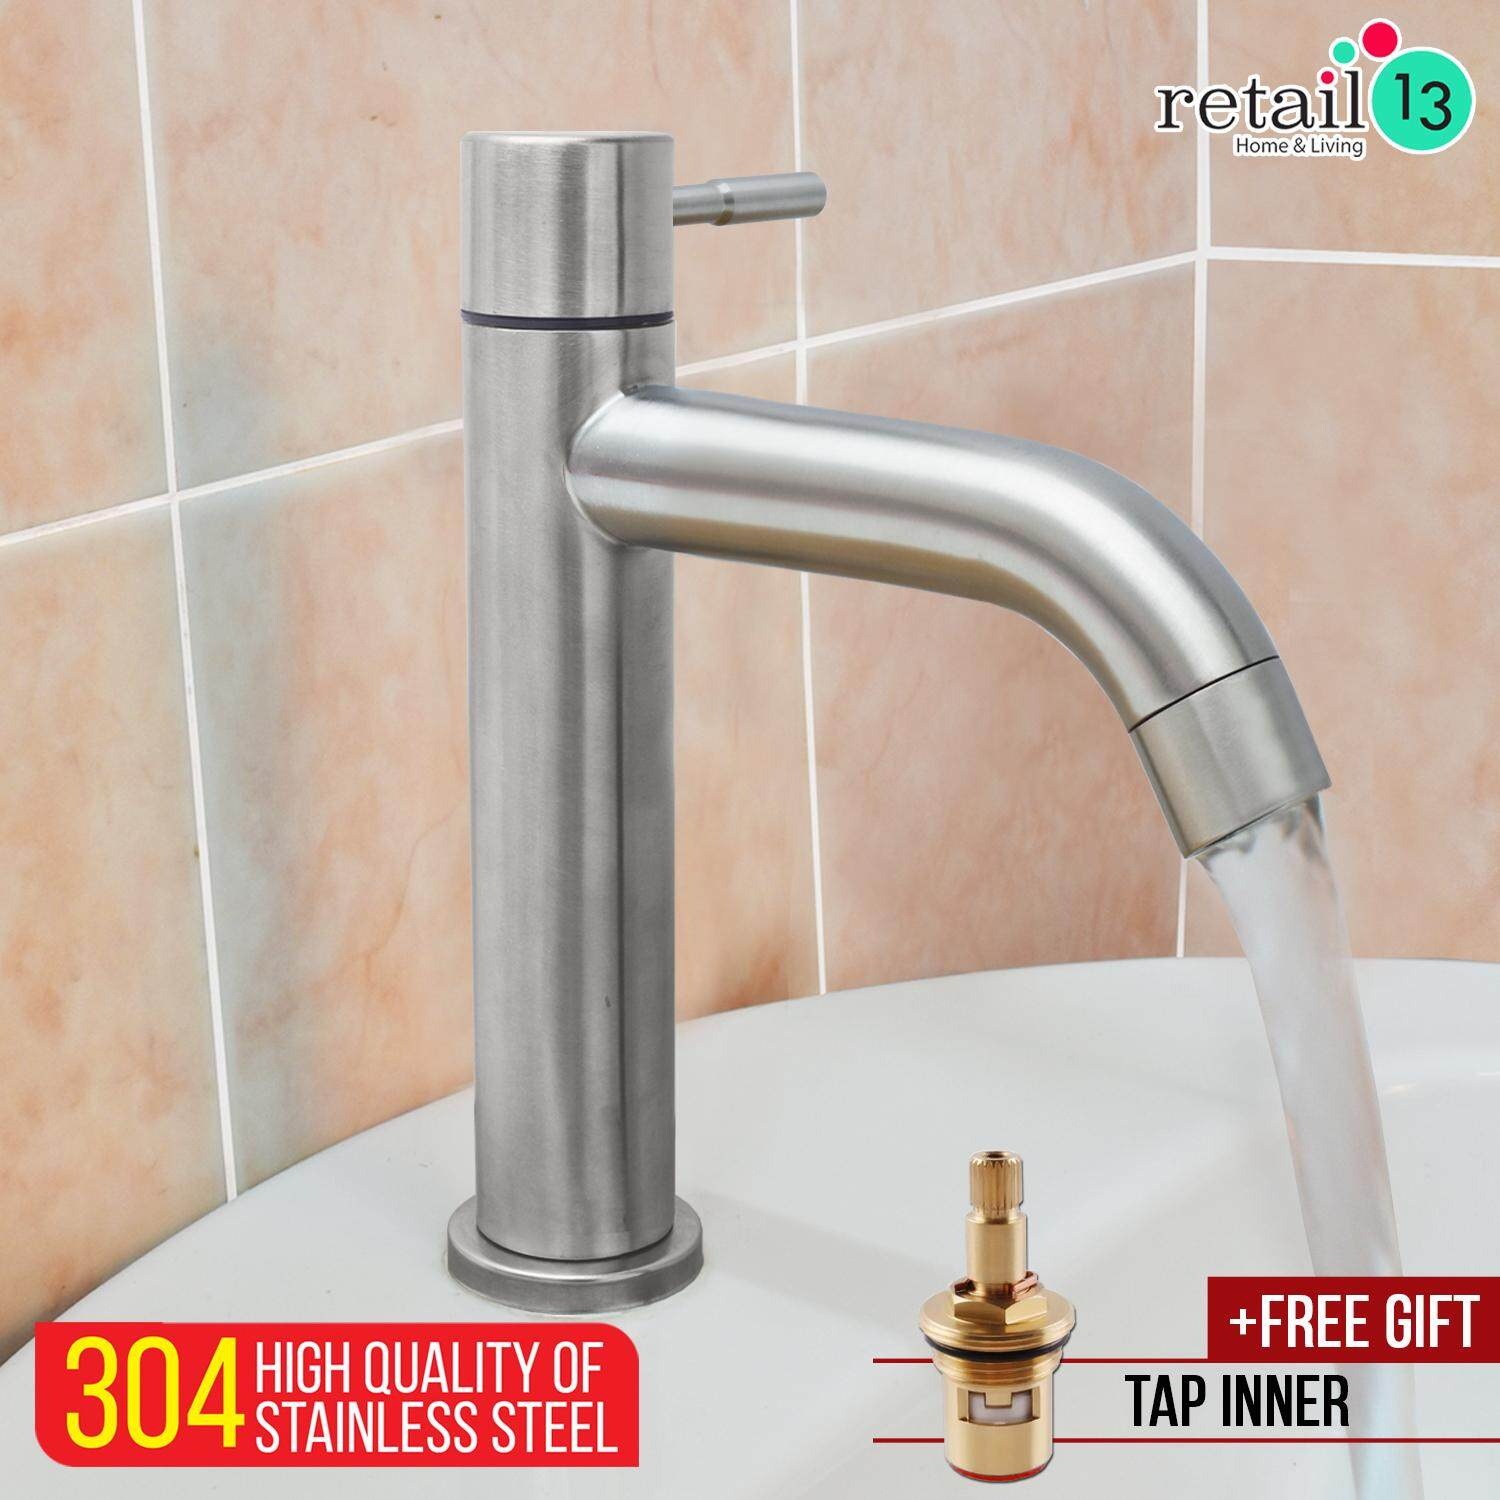 SUS 304 STAINLESS STEEL SINGLE HANDLE MONOBLOCK BATHROOM KITCHEN FAUCET HIGH BASIN TAP